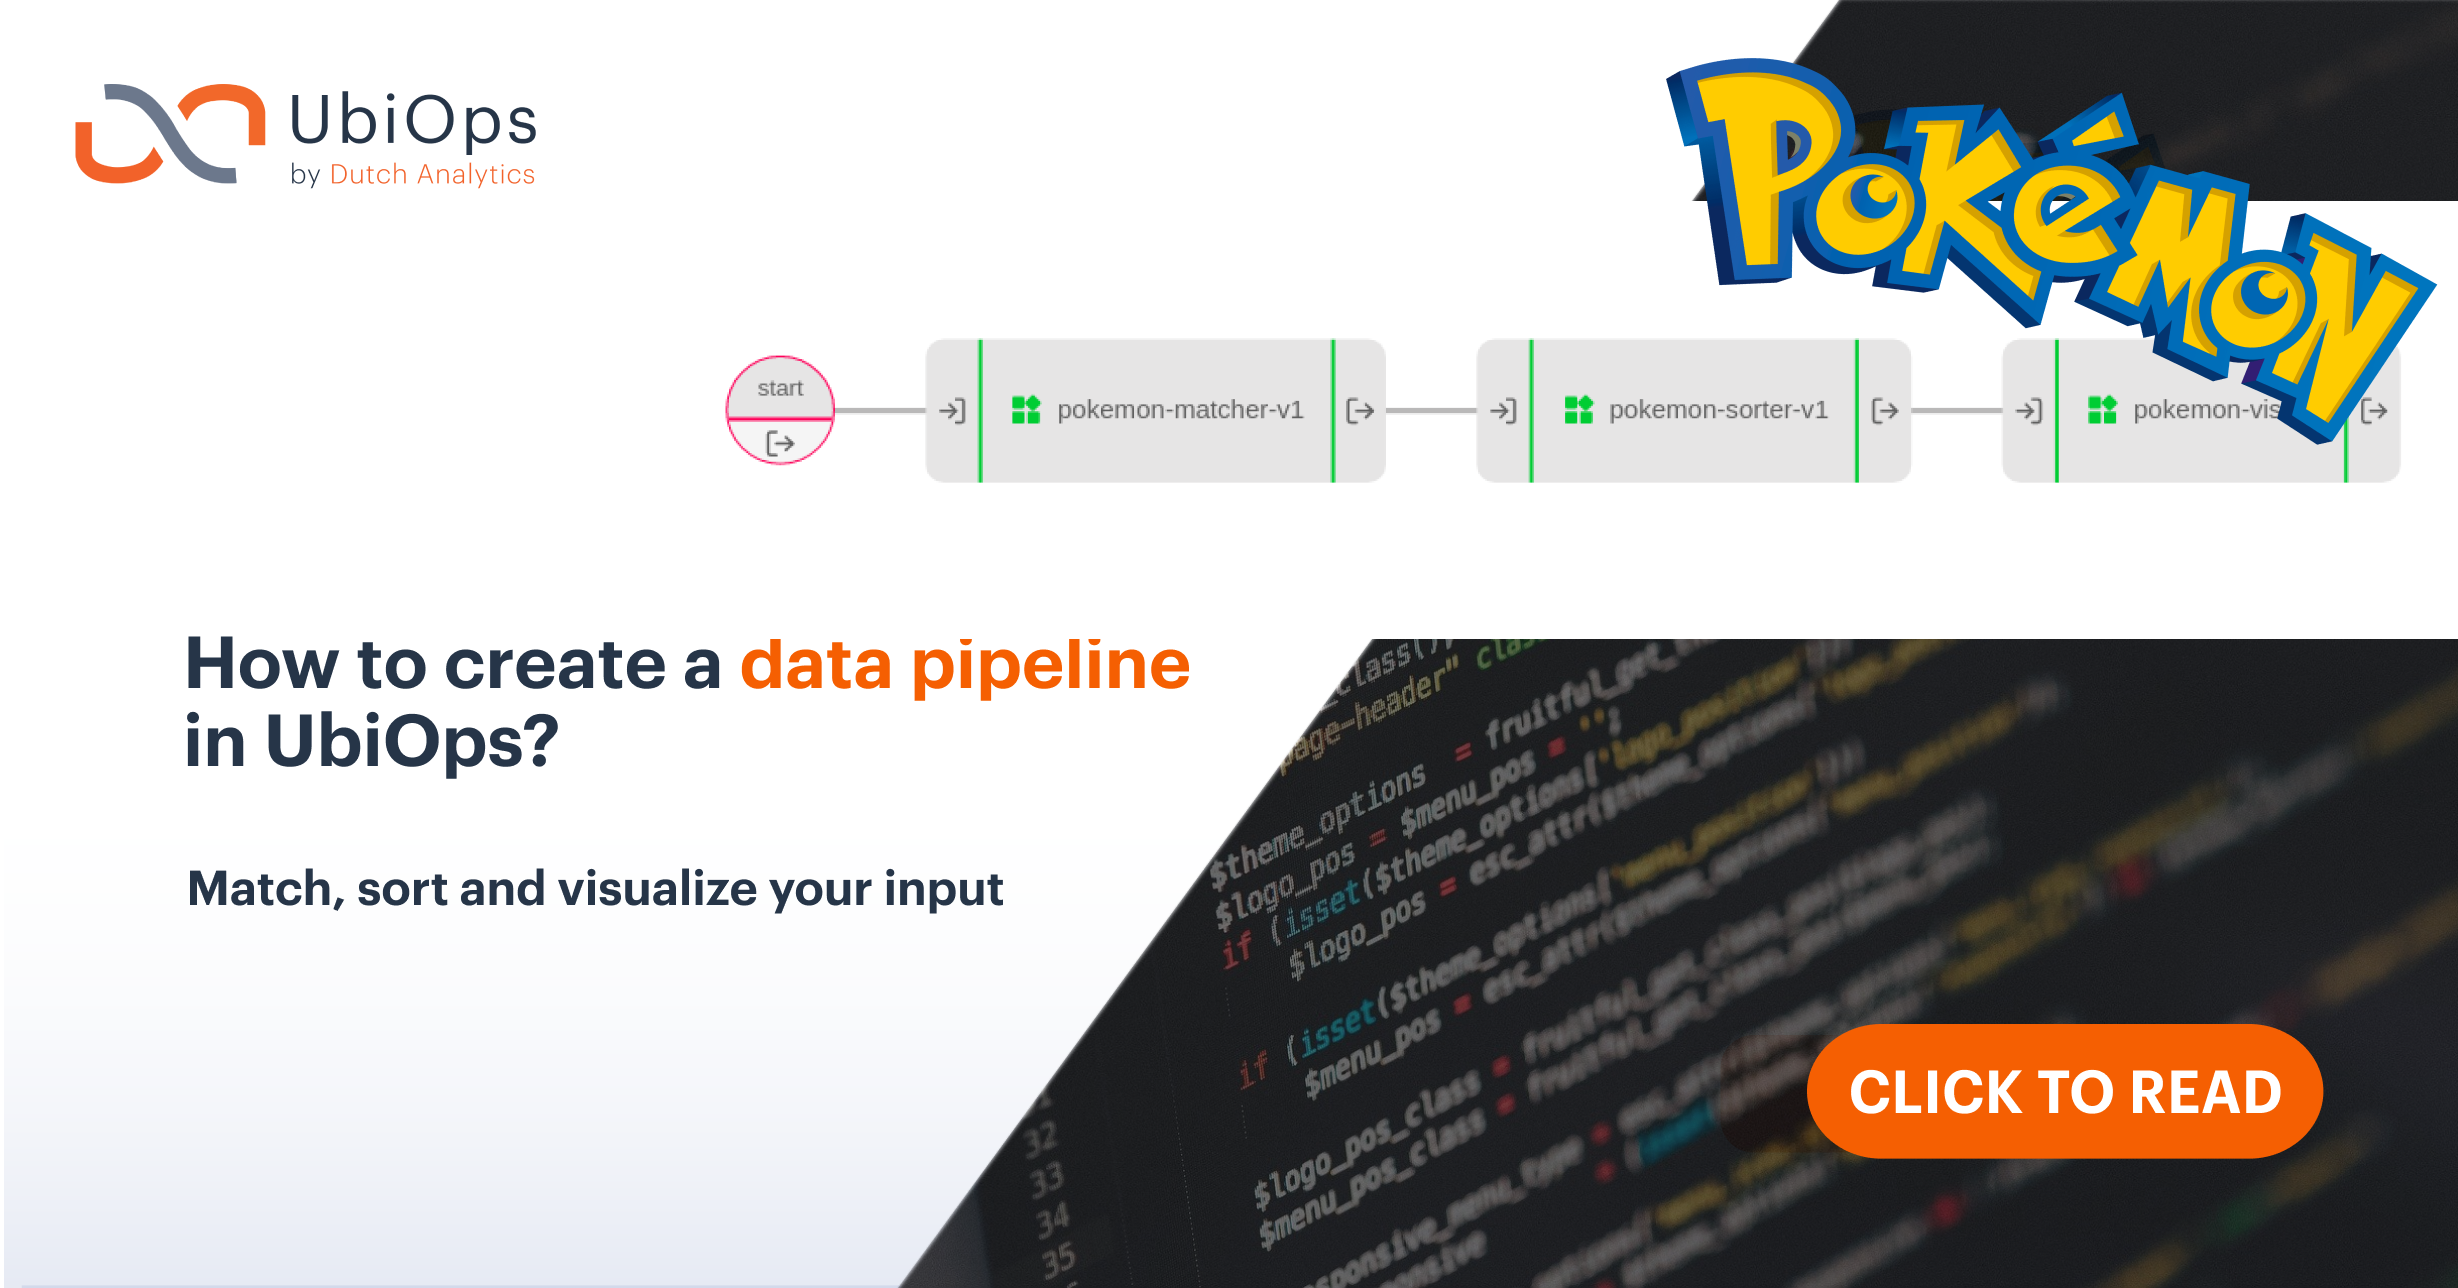 How to create a data pipeline in UbiOps?